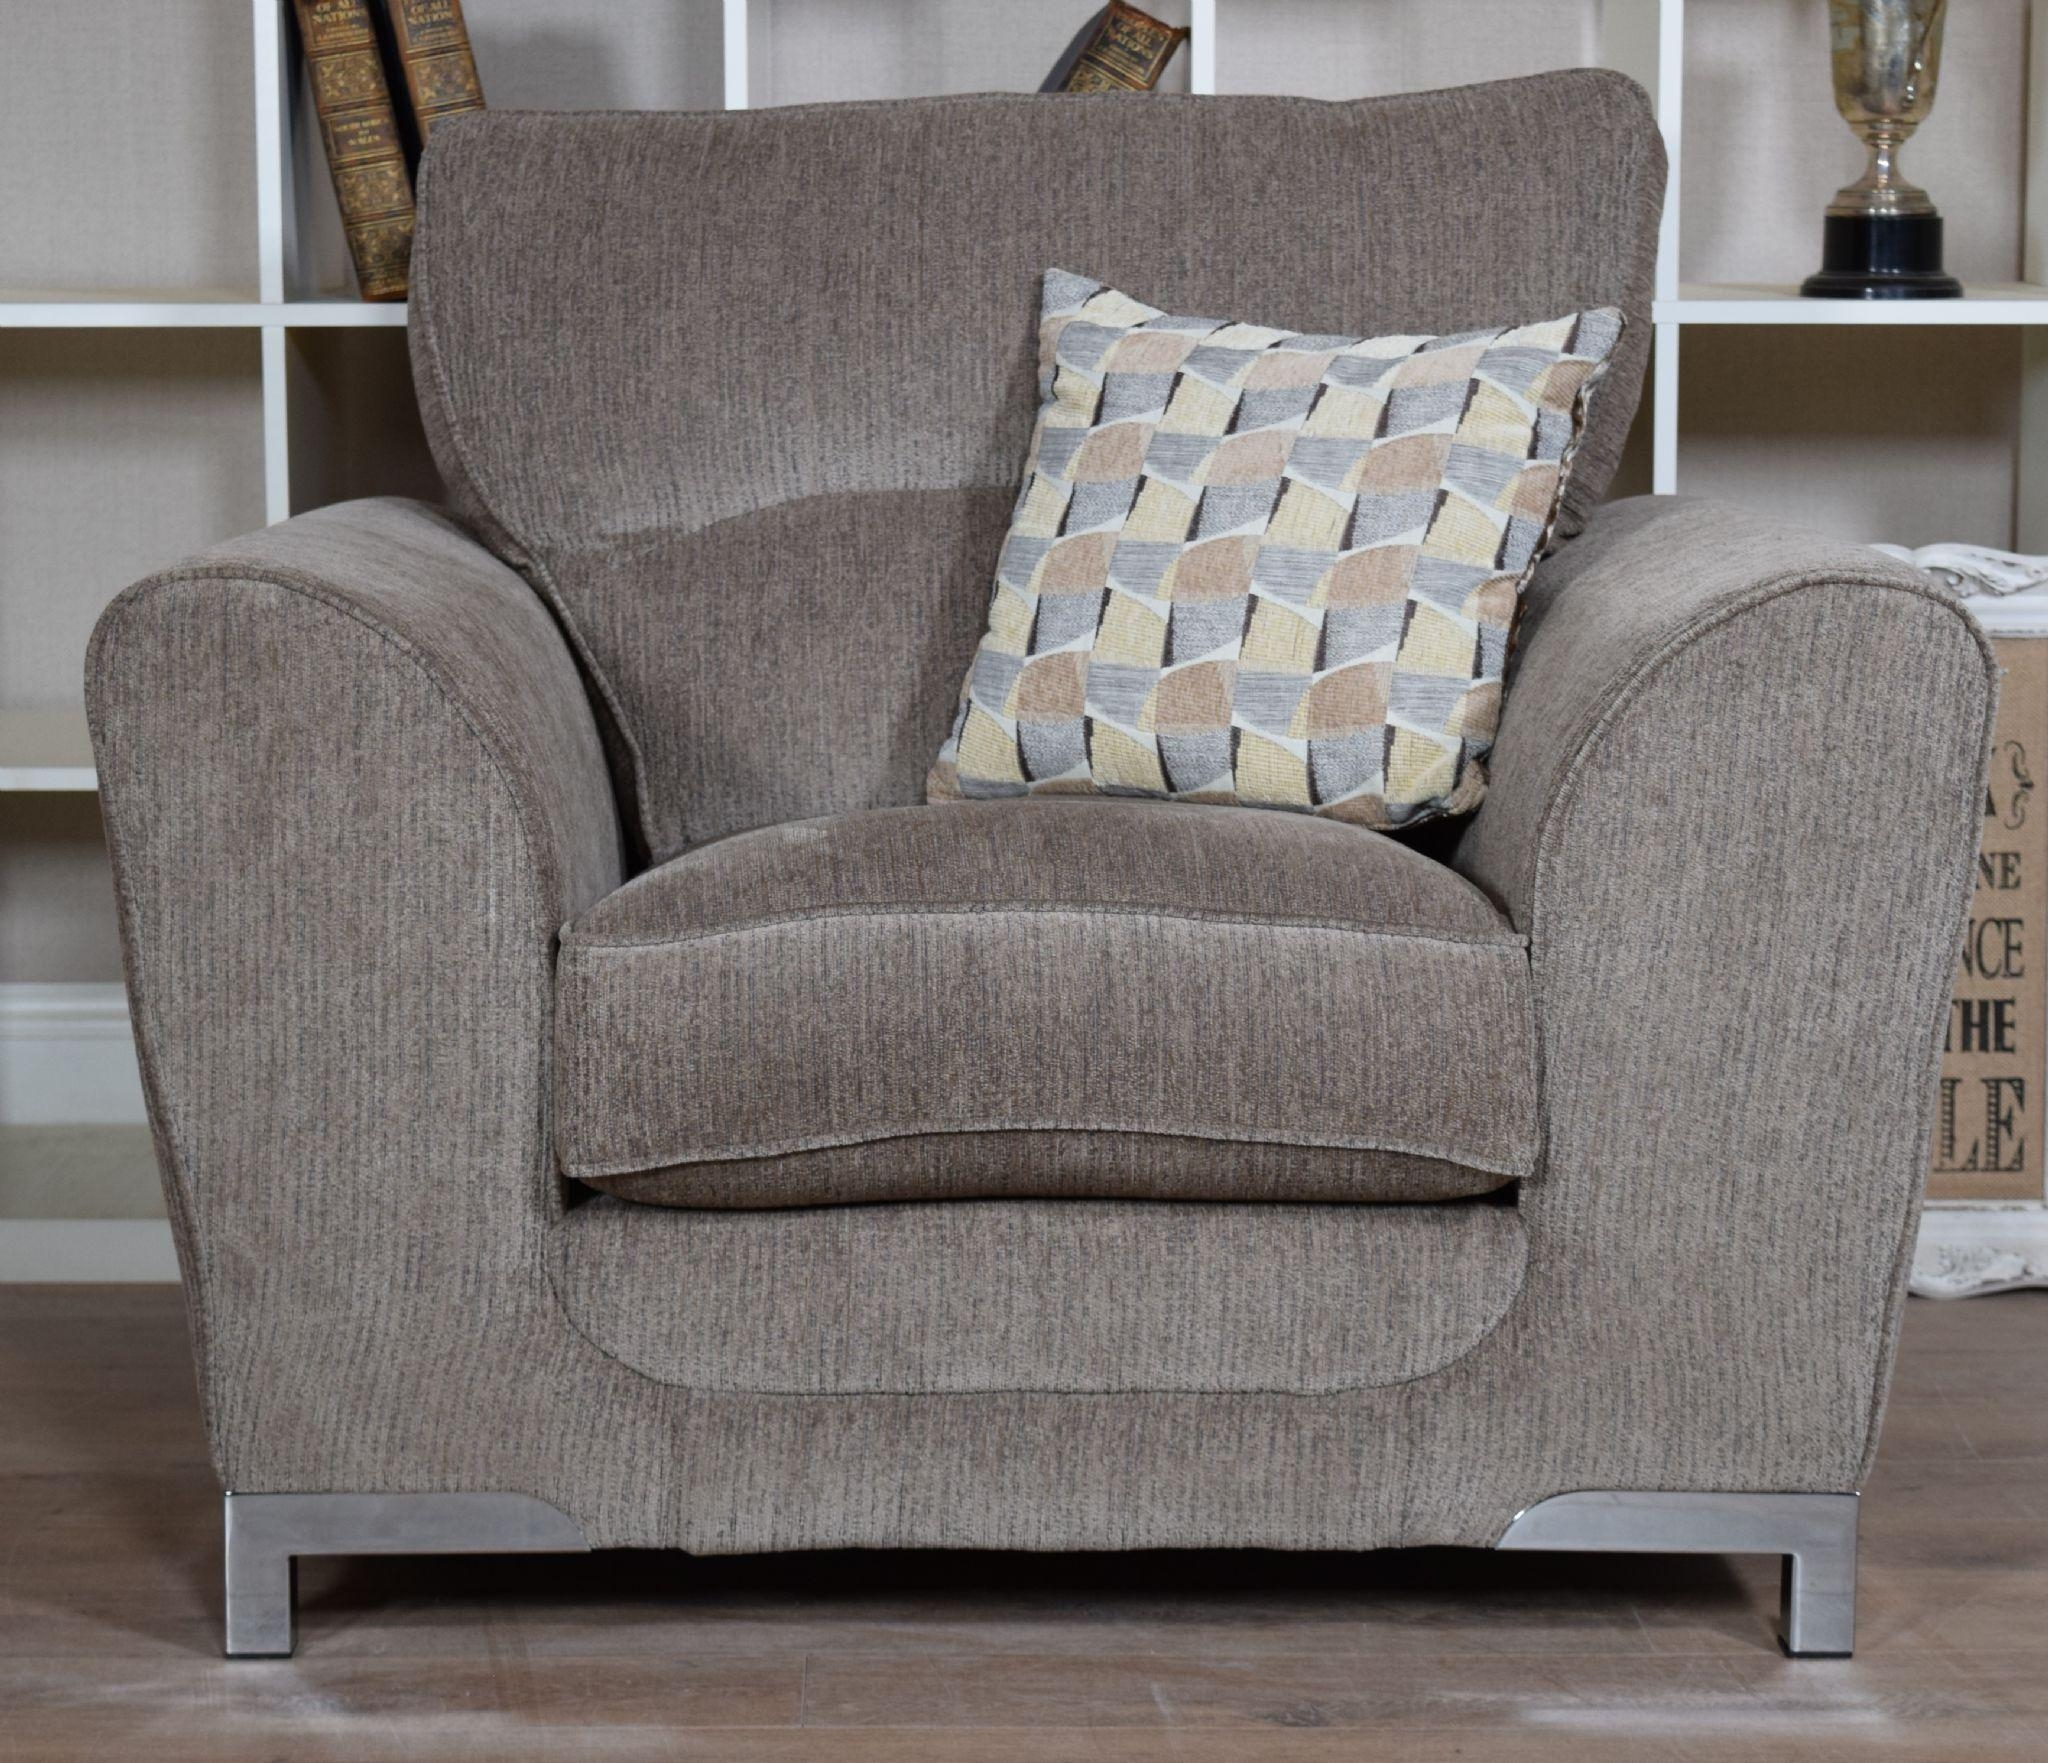 Set Nikki 3 Seater Sofa & Cuddle Chair Suite Set – Mocha Grey Inside 3 Seater Sofa And Cuddle Chairs (Image 15 of 20)